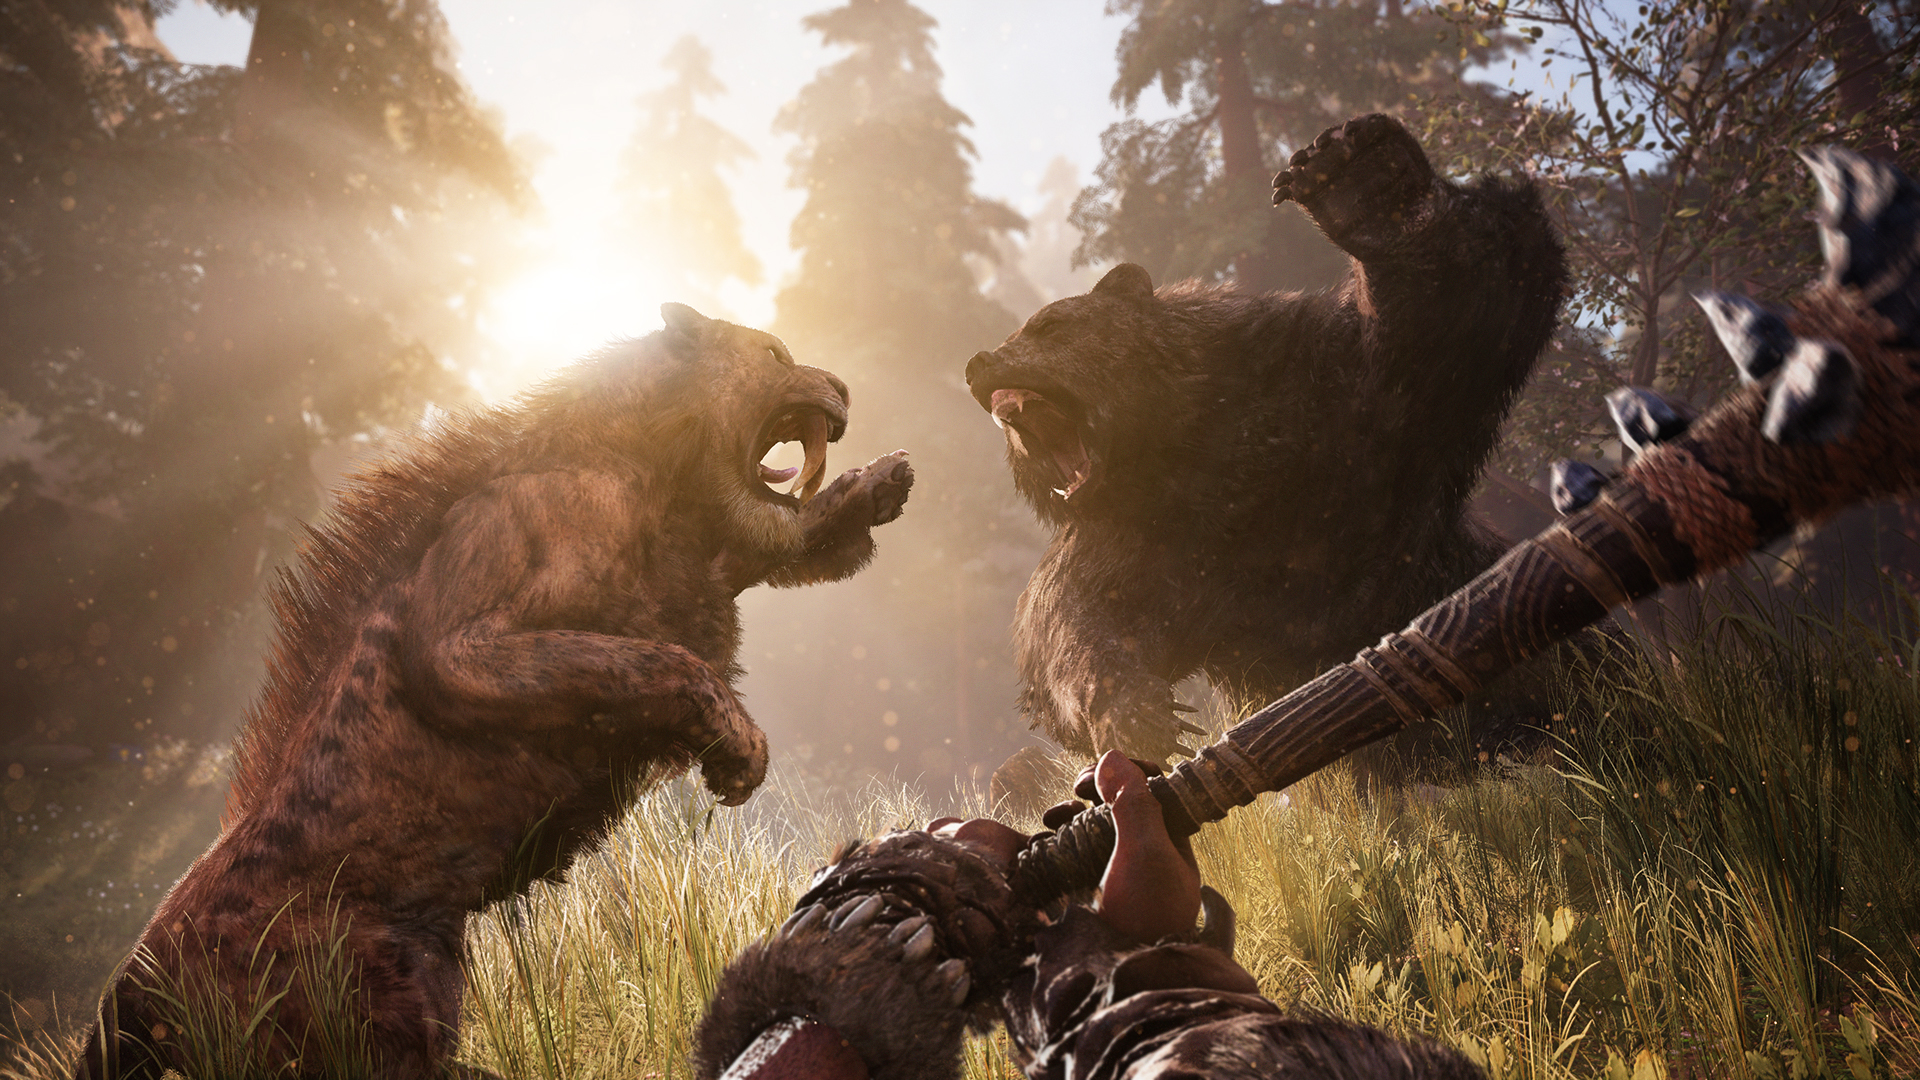 Far cry primal steam discovery.